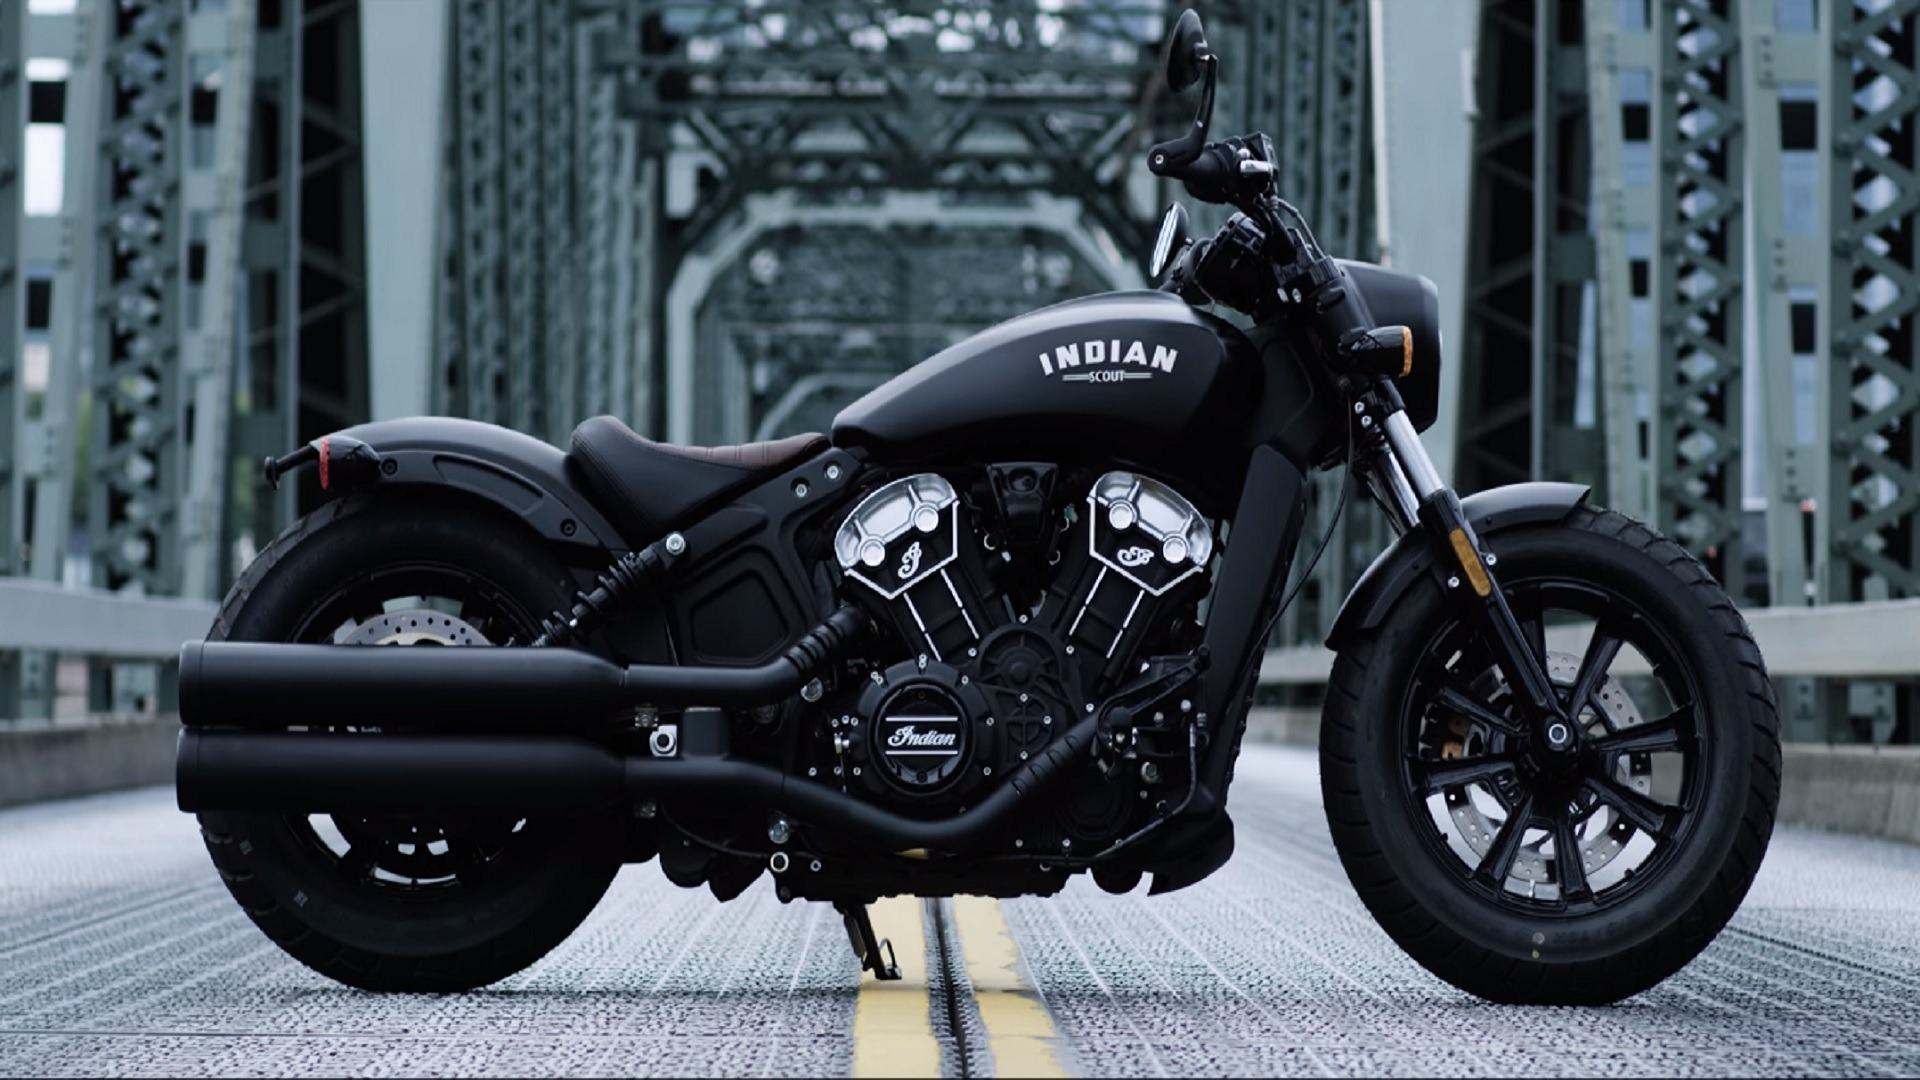 indian scout bobber motorcycle is slammed style in a sleek. Black Bedroom Furniture Sets. Home Design Ideas